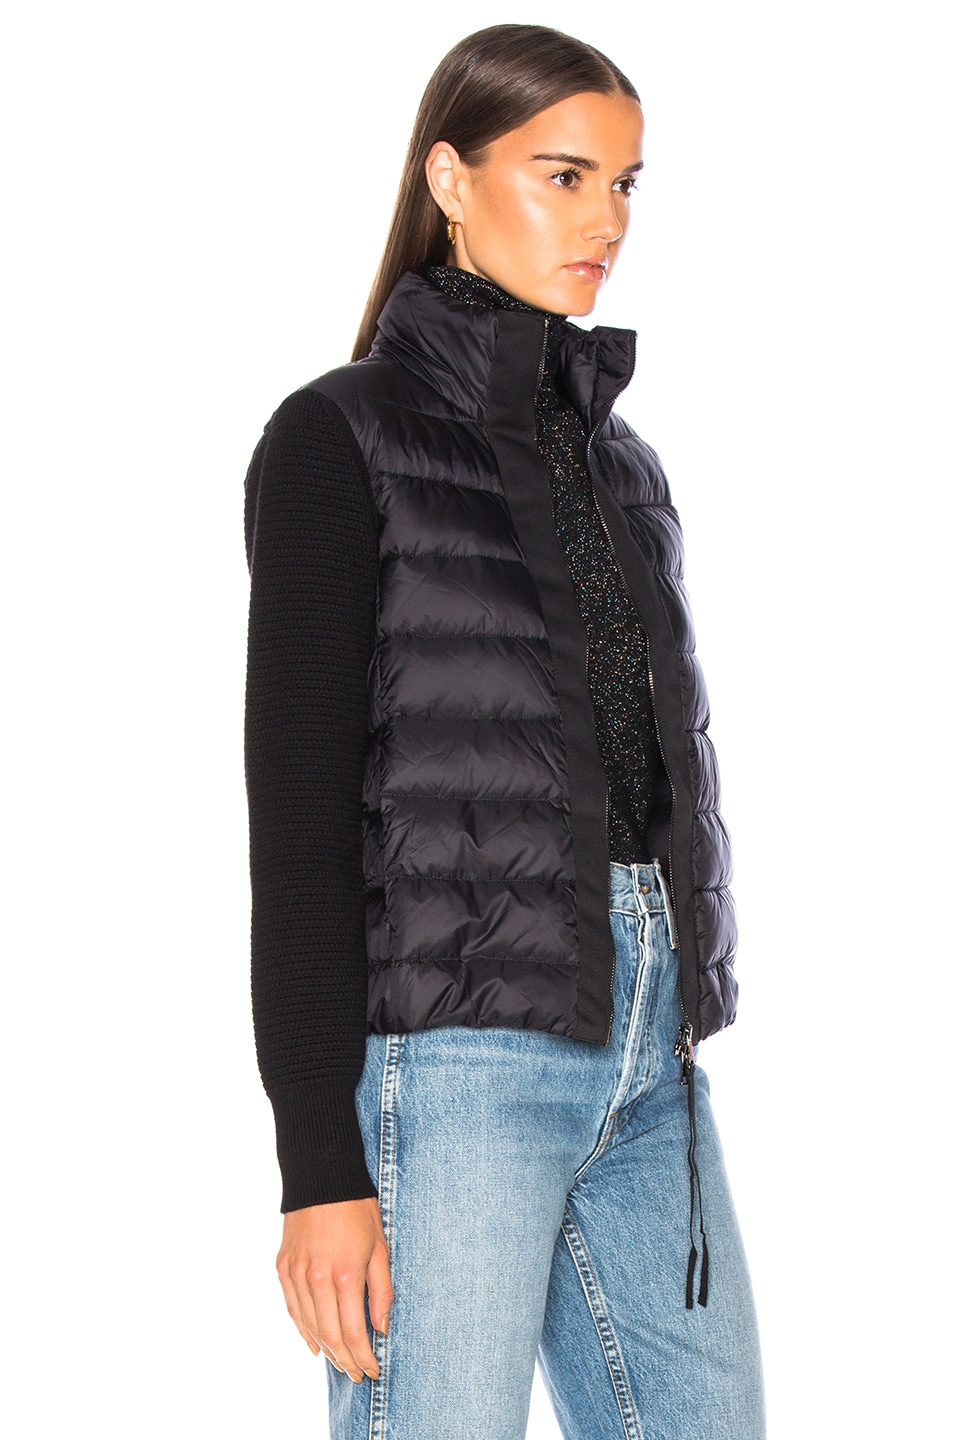 Image 3 of Moncler Maglione Tricot Cardigan in Black